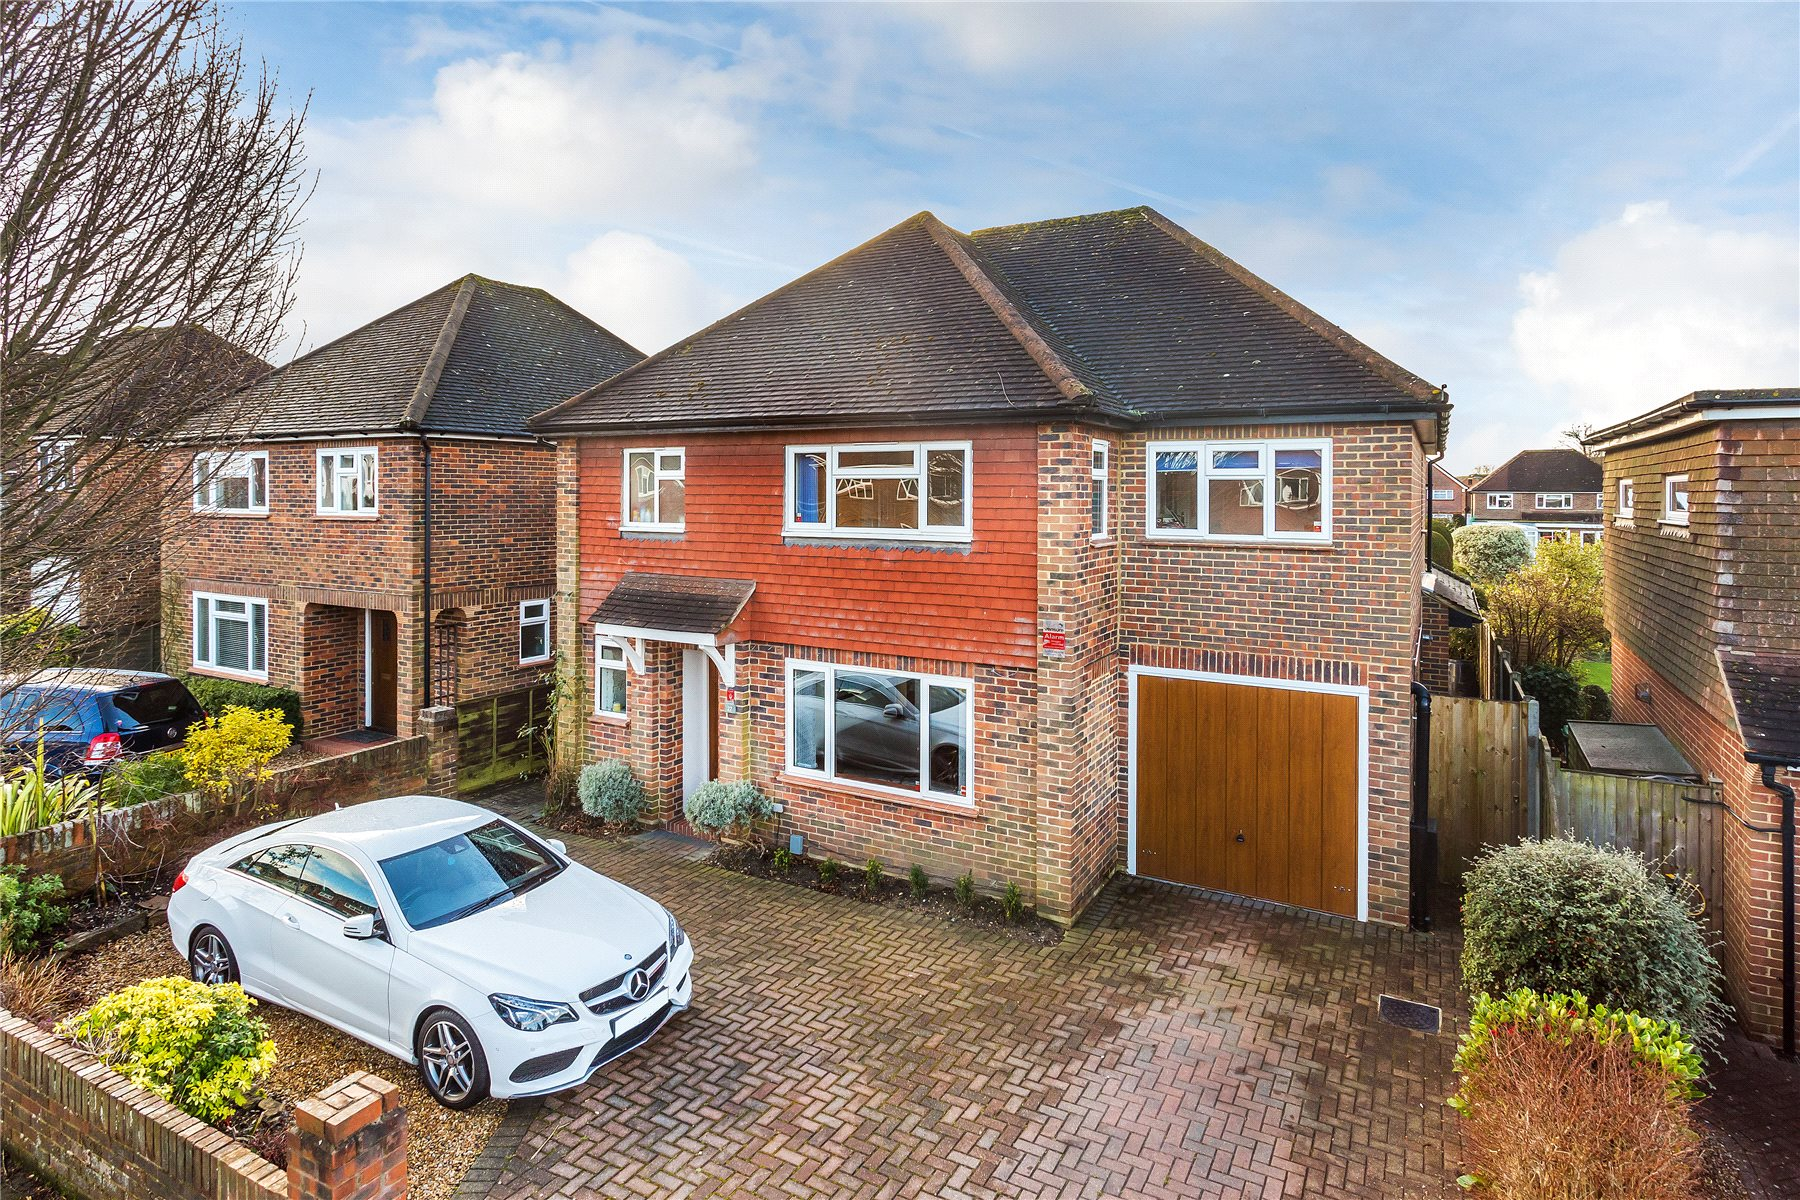 4 Bedrooms Detached House for sale in Lane End Drive, Knaphill, Woking, Surrey, GU21